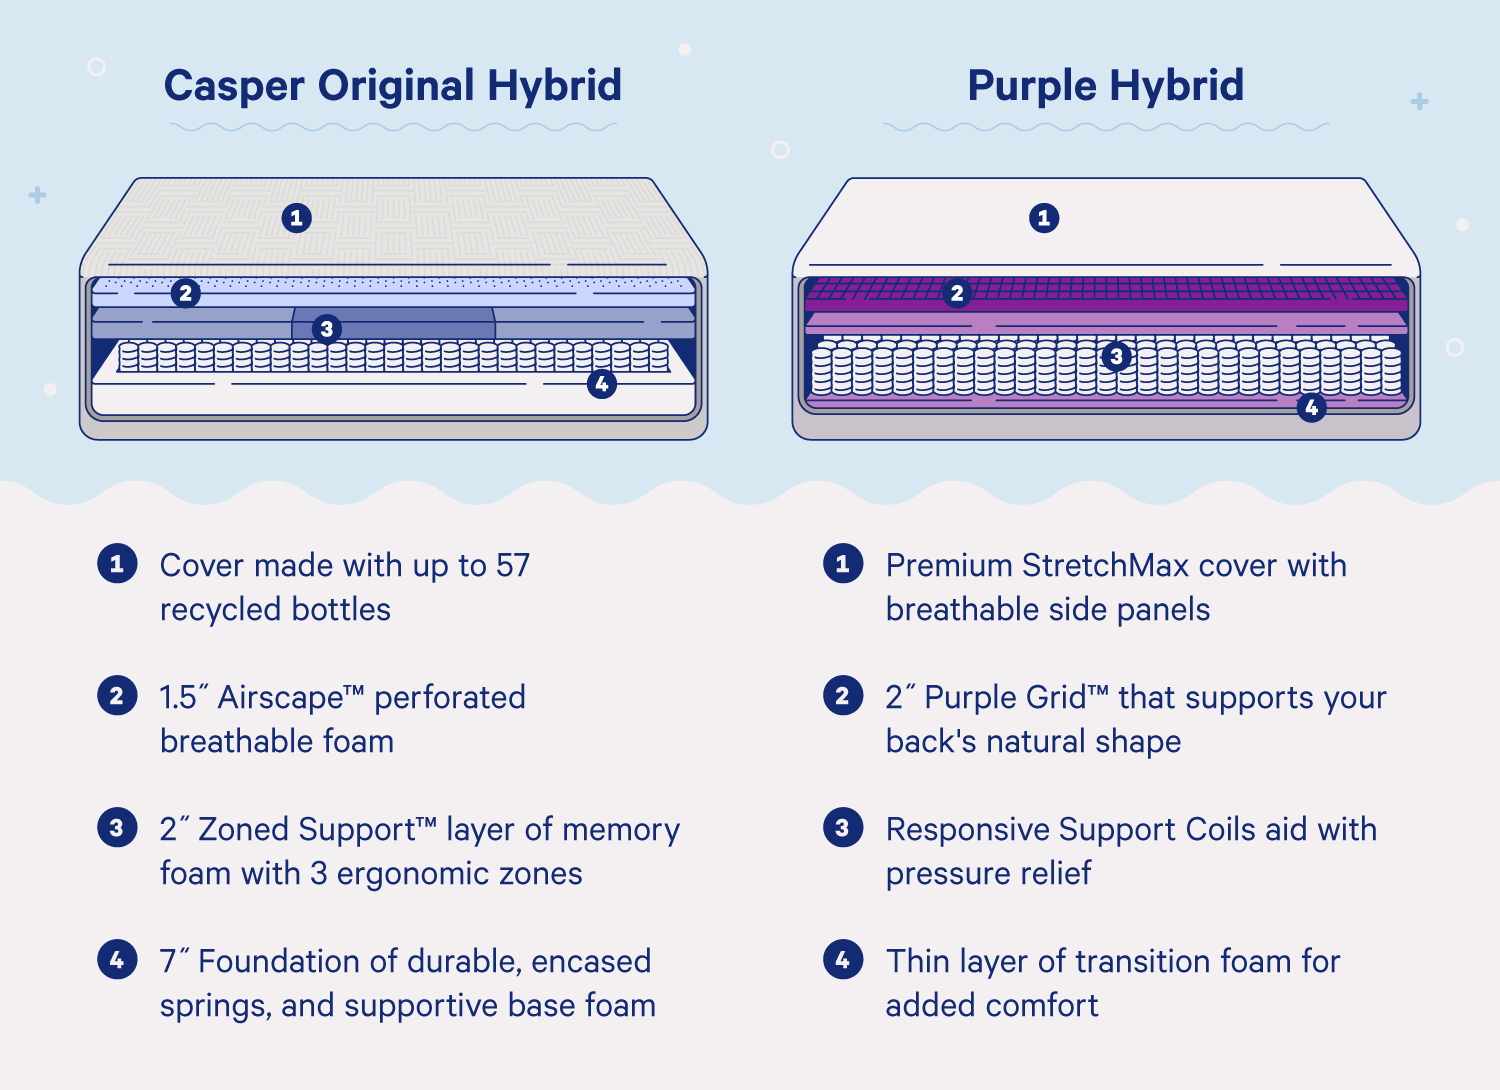 Original Hybrid vs. Purple Hybrid